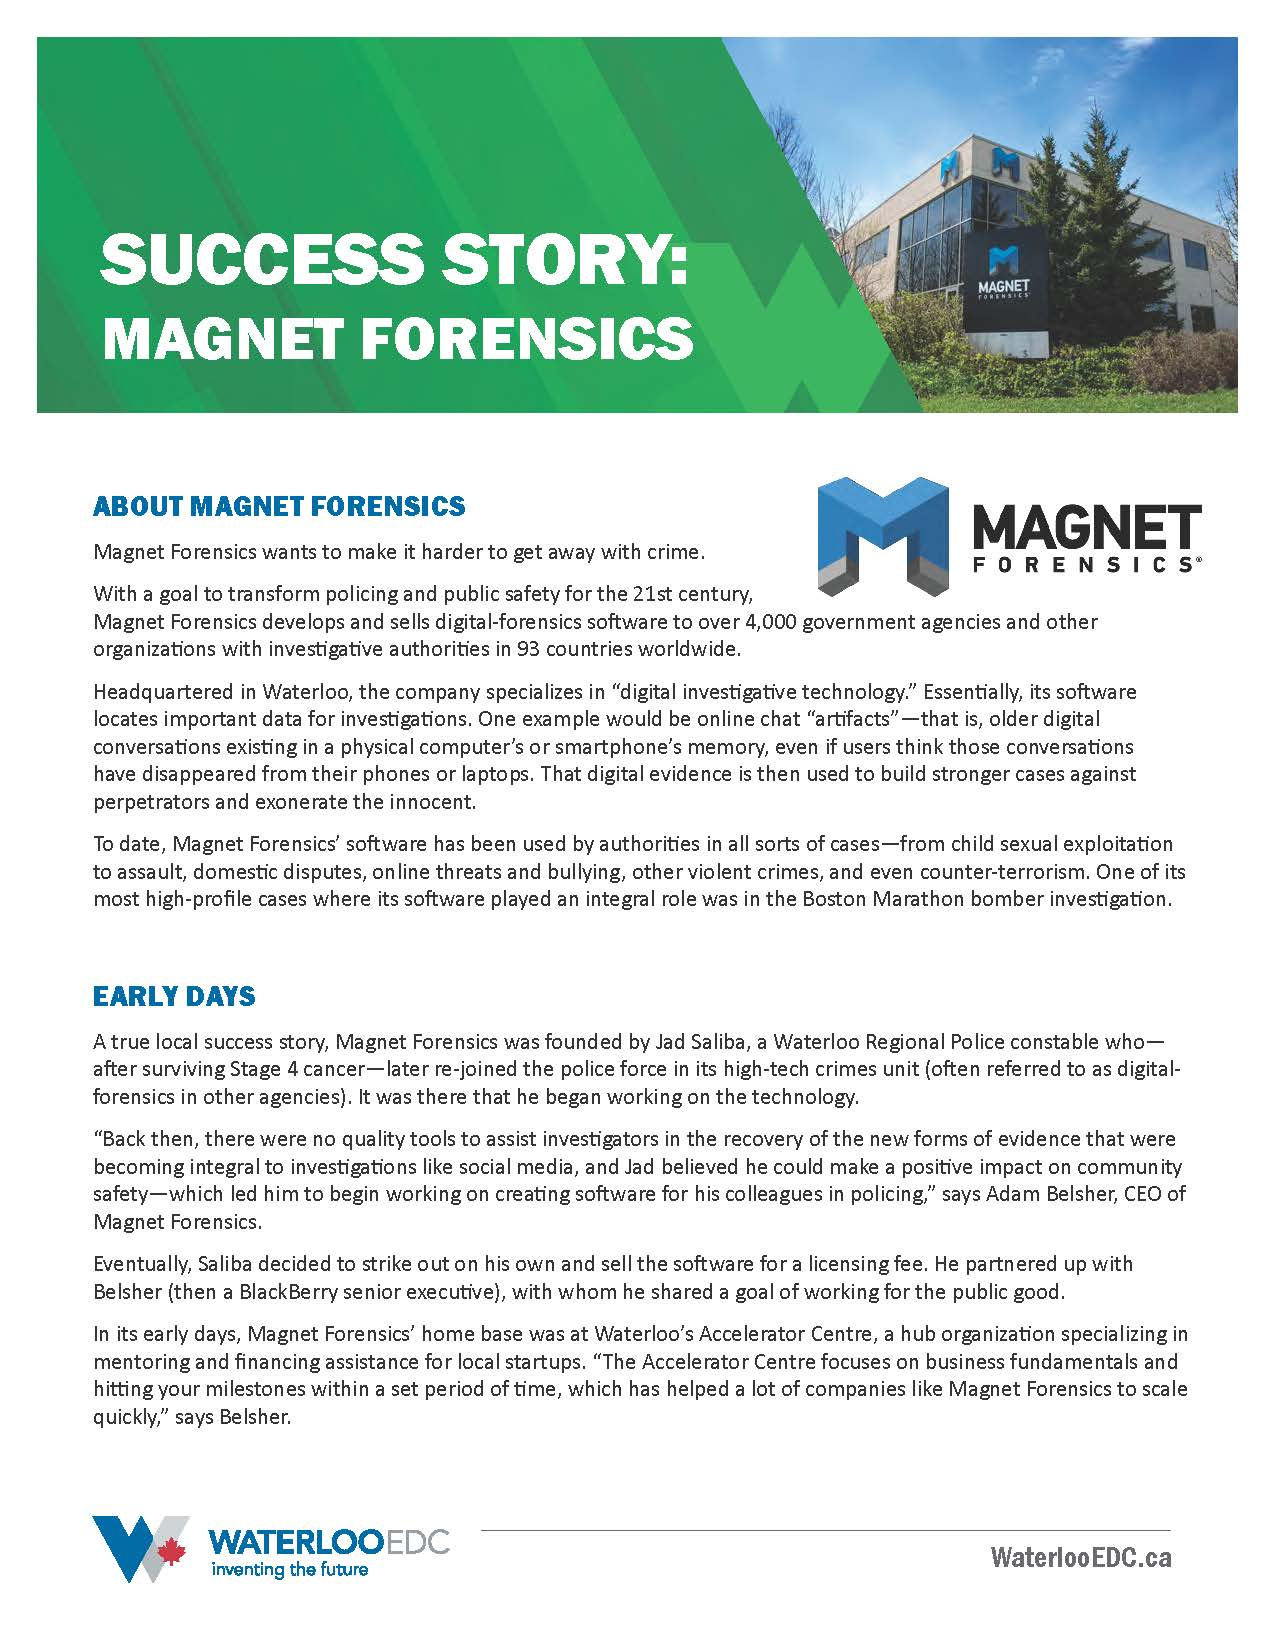 Success story: Magnet Forensics